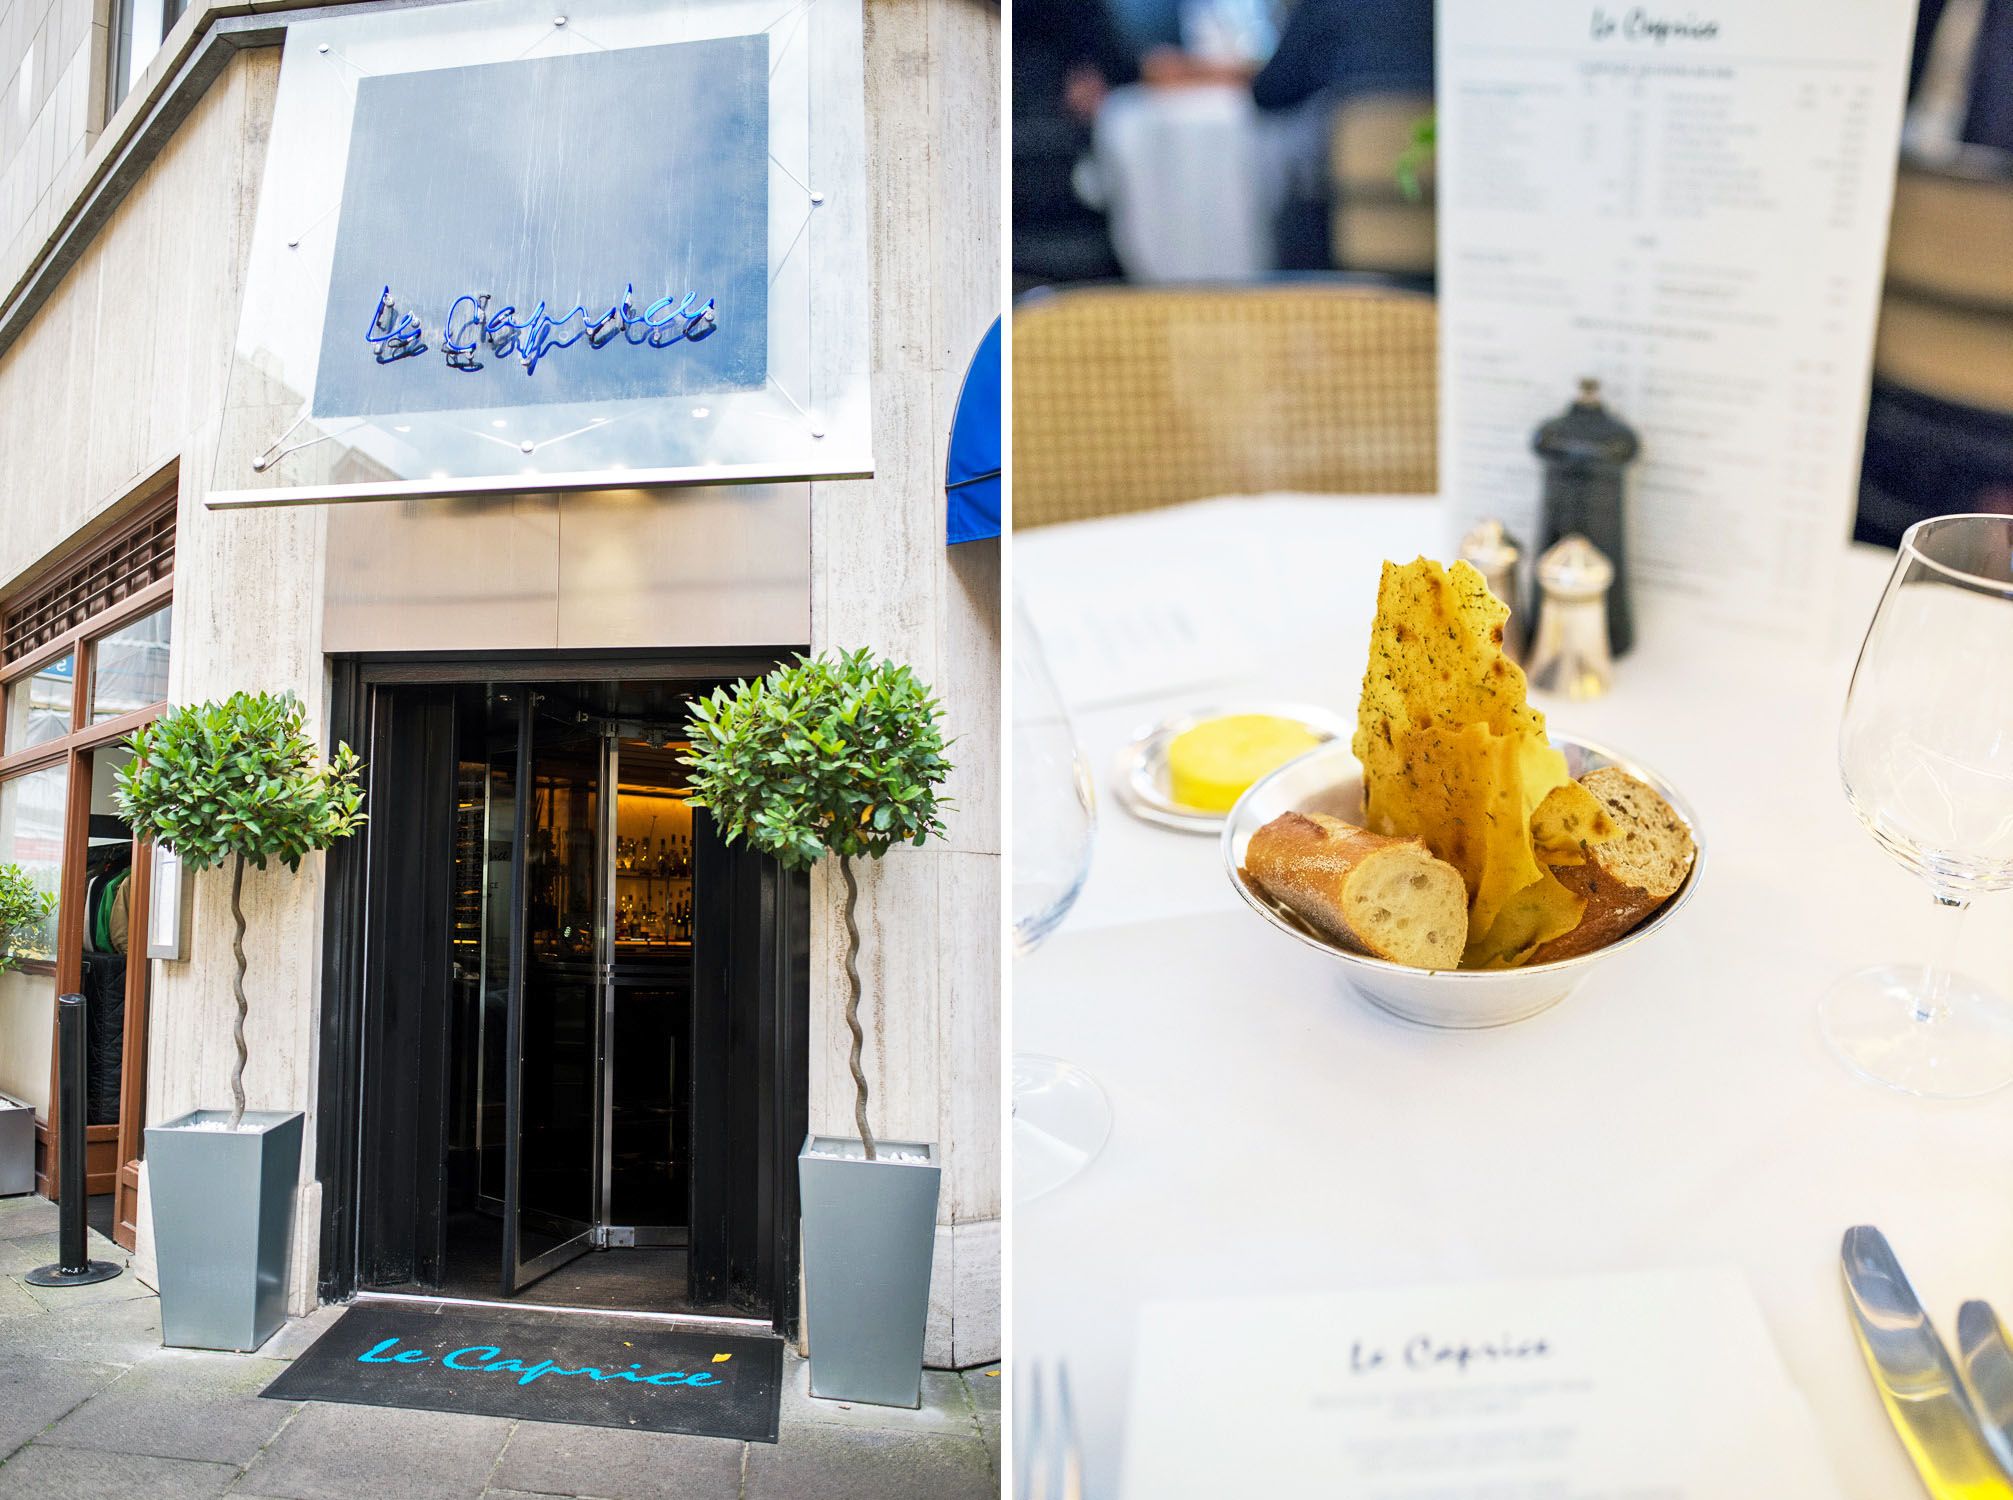 le-caprice-restaurant-piccadilly-london